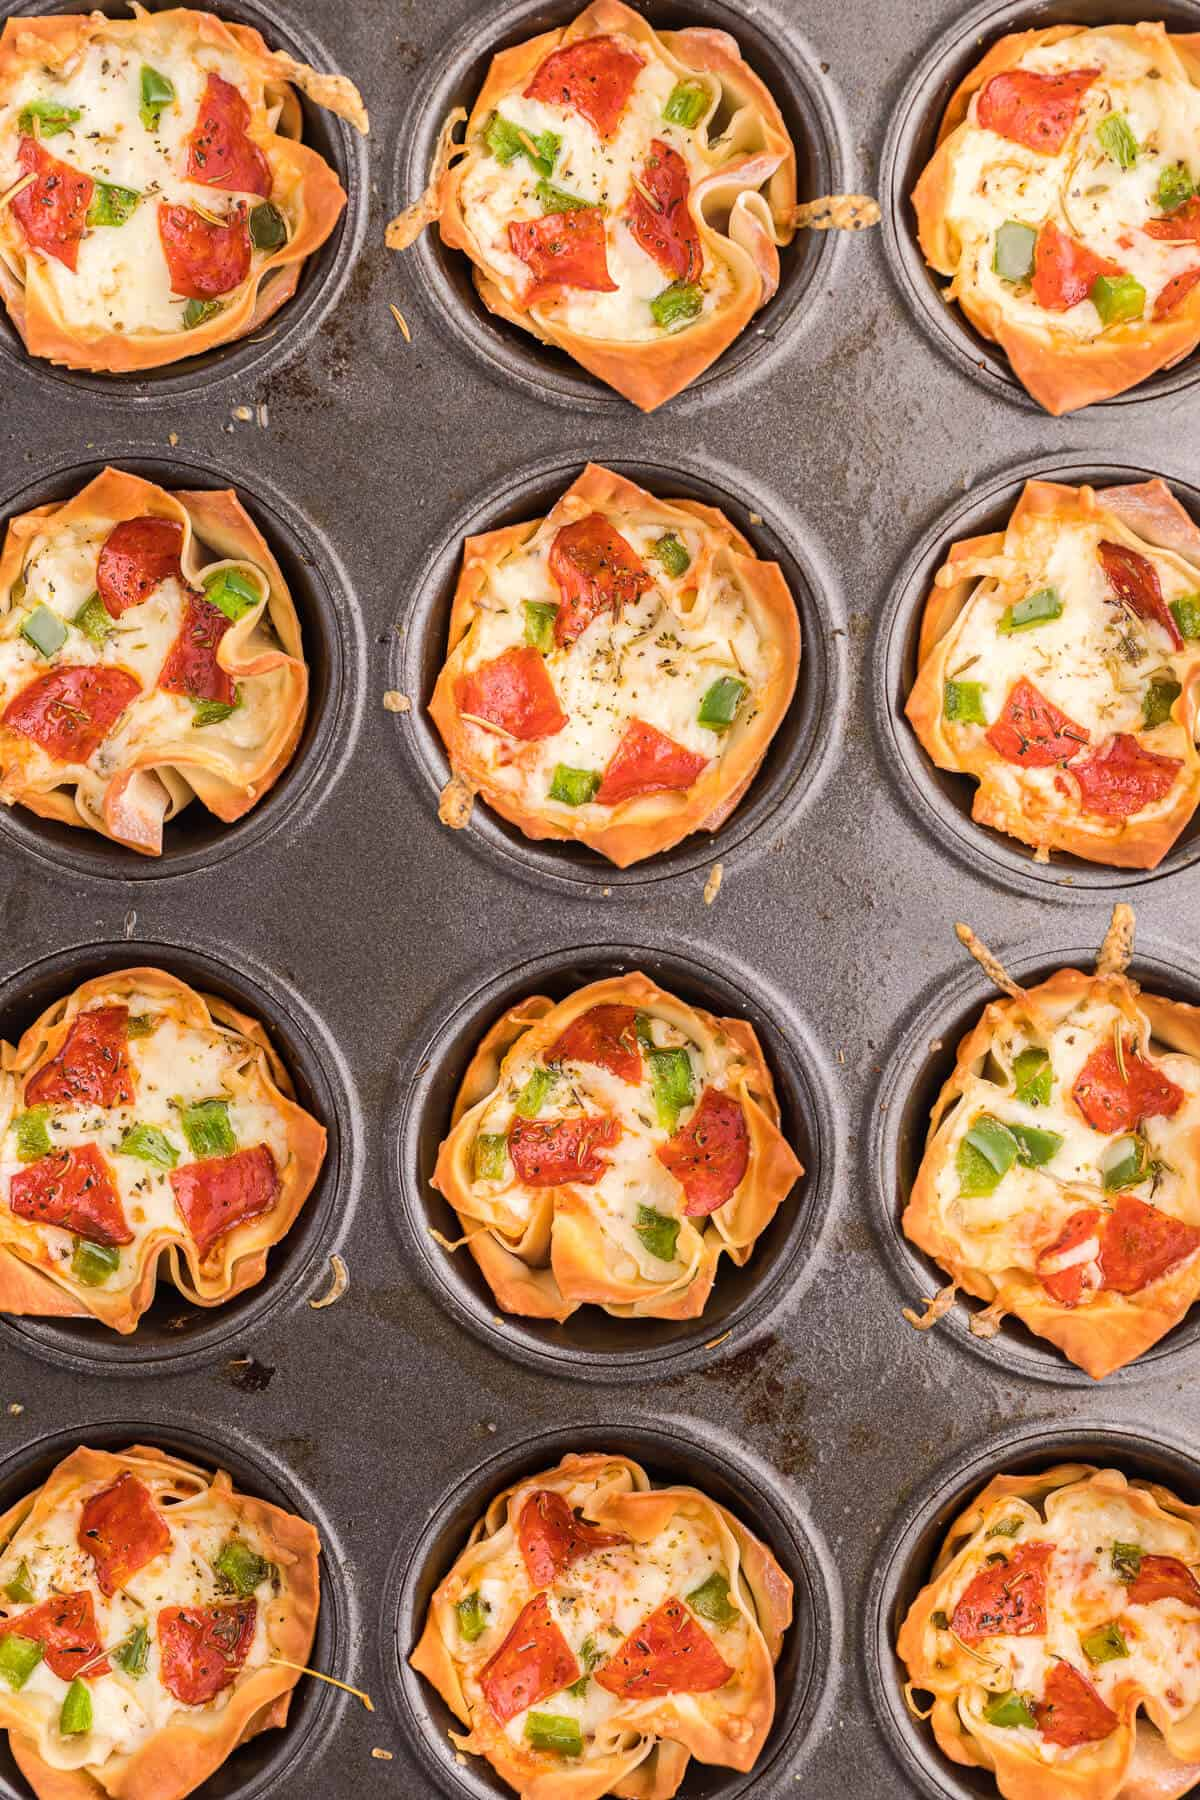 Pizza Wonton Cups Recipe - East meets West in this simple crunchy appetizer. A crispy wonton is filled with cheesy pizza goodness with any toppings you want!